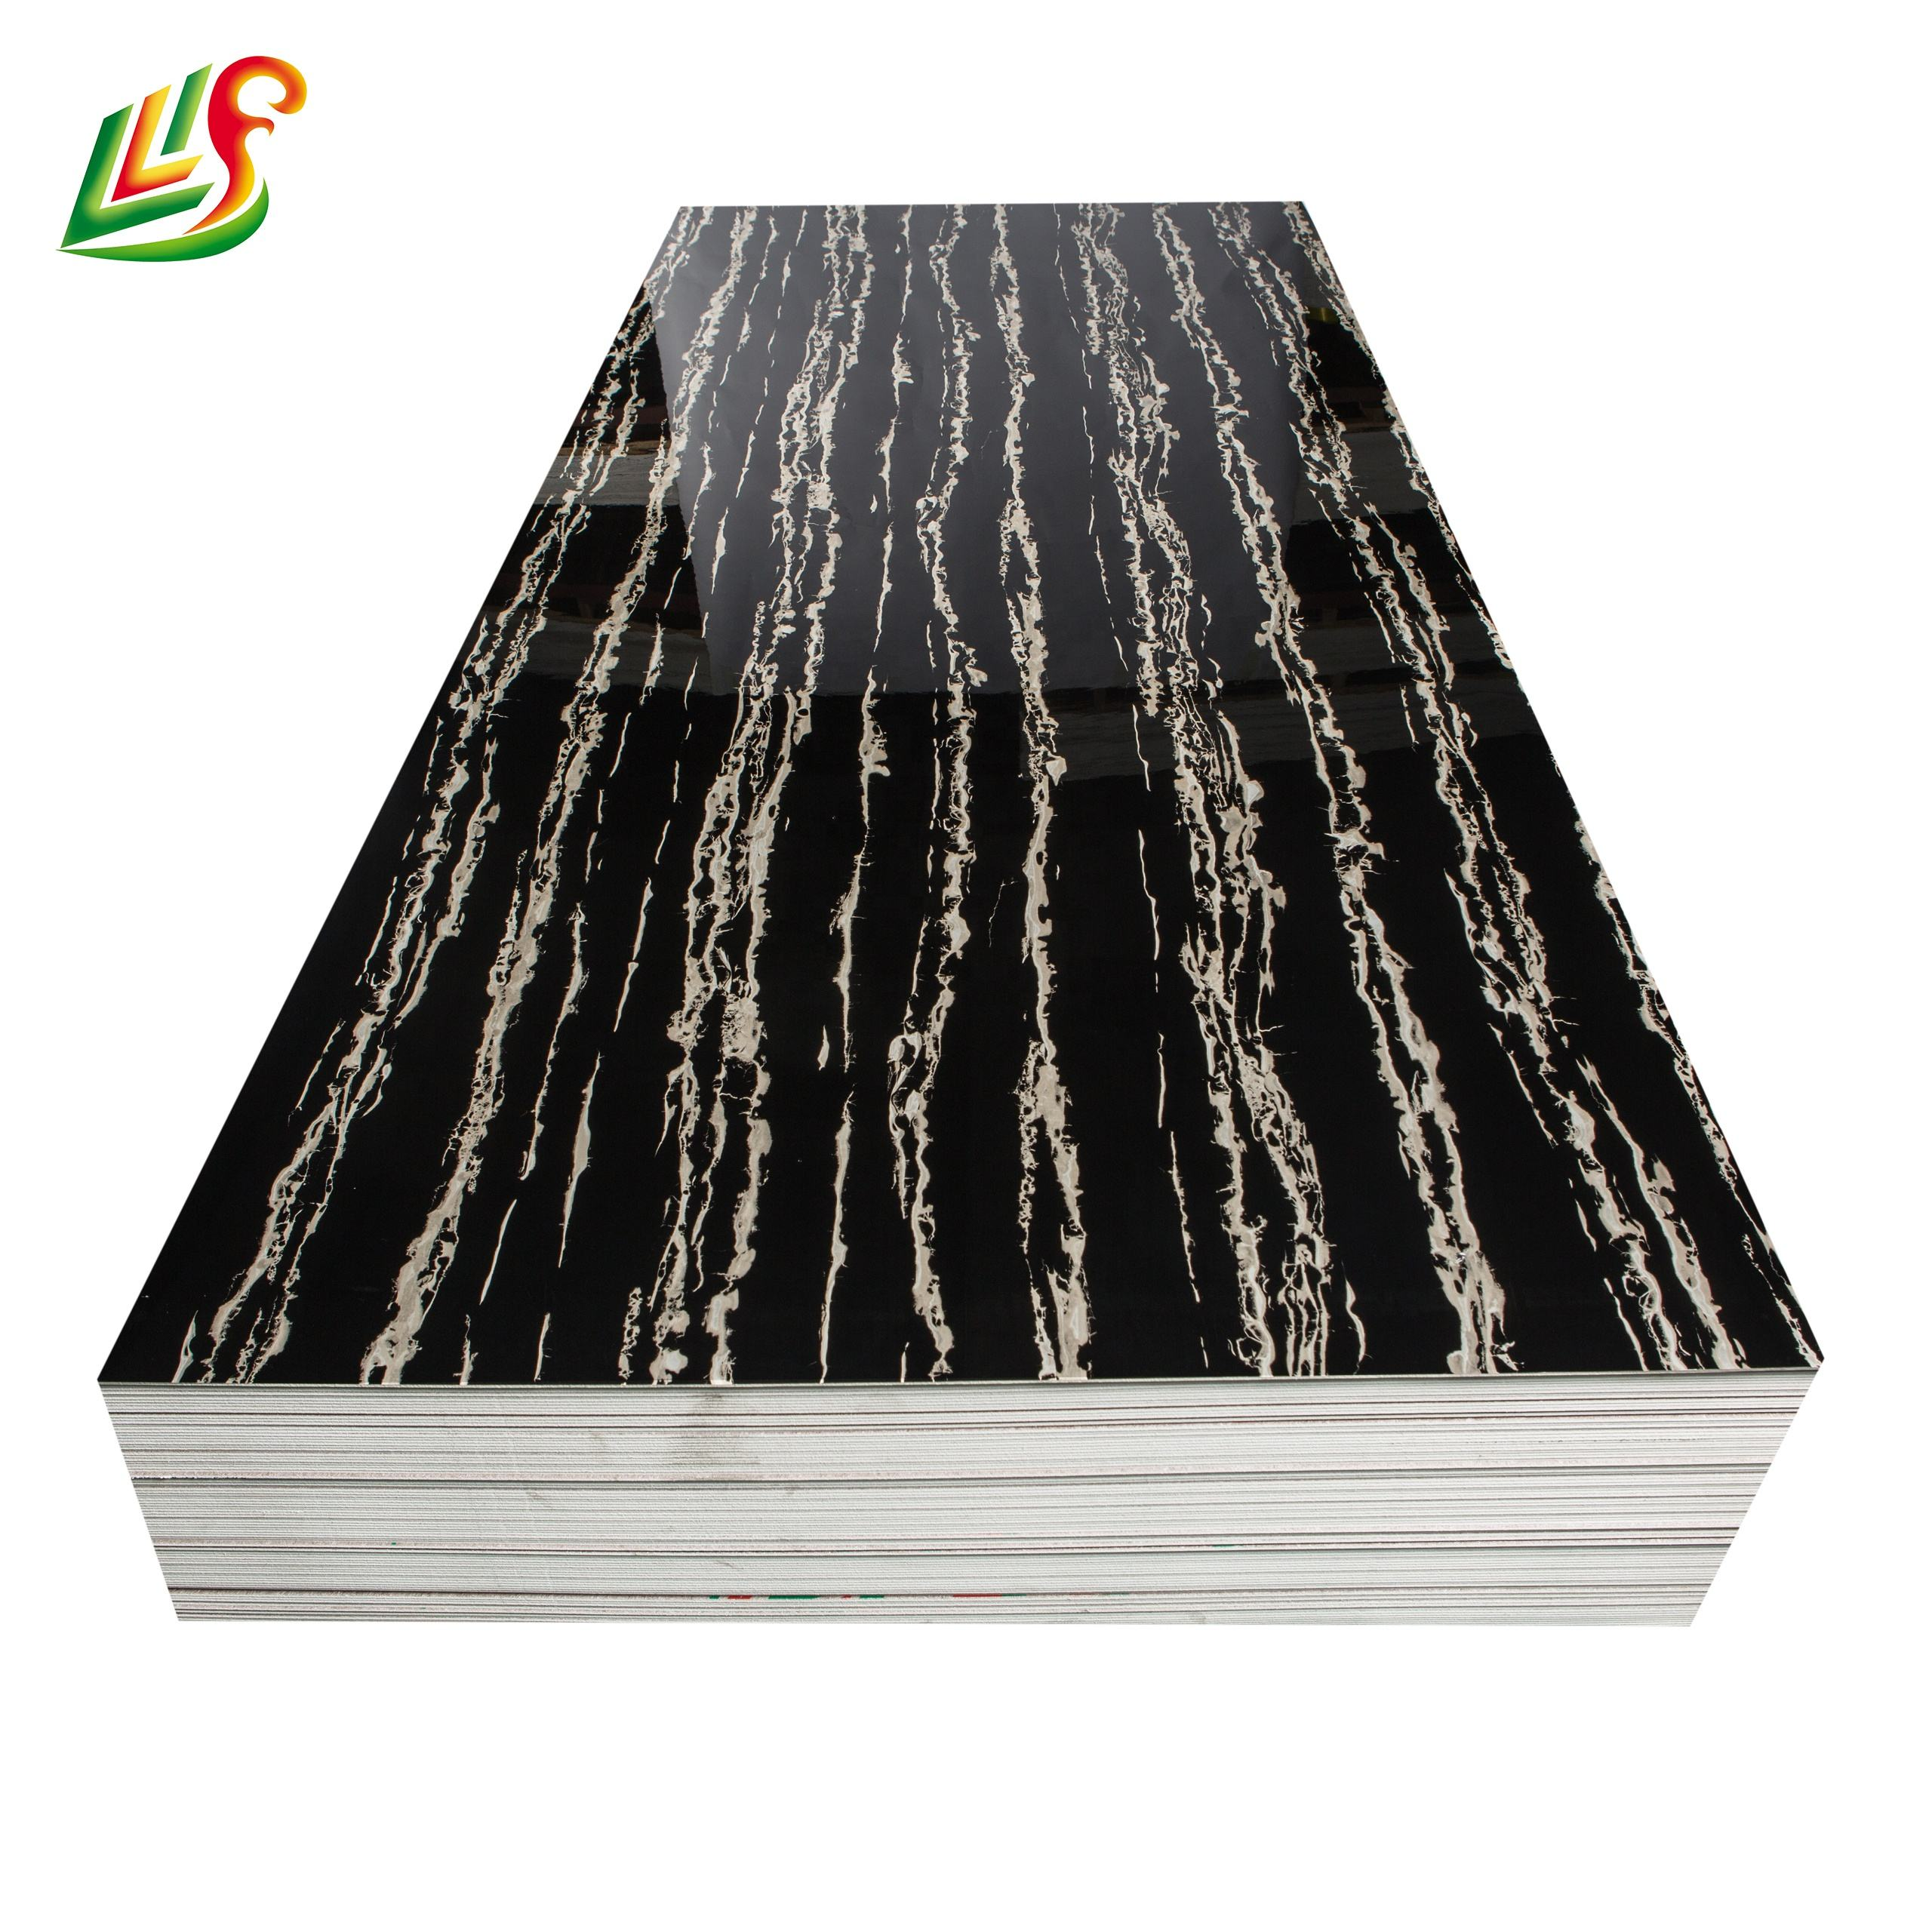 High gloss melamine PVC decorative wall covering faux stone wall panel